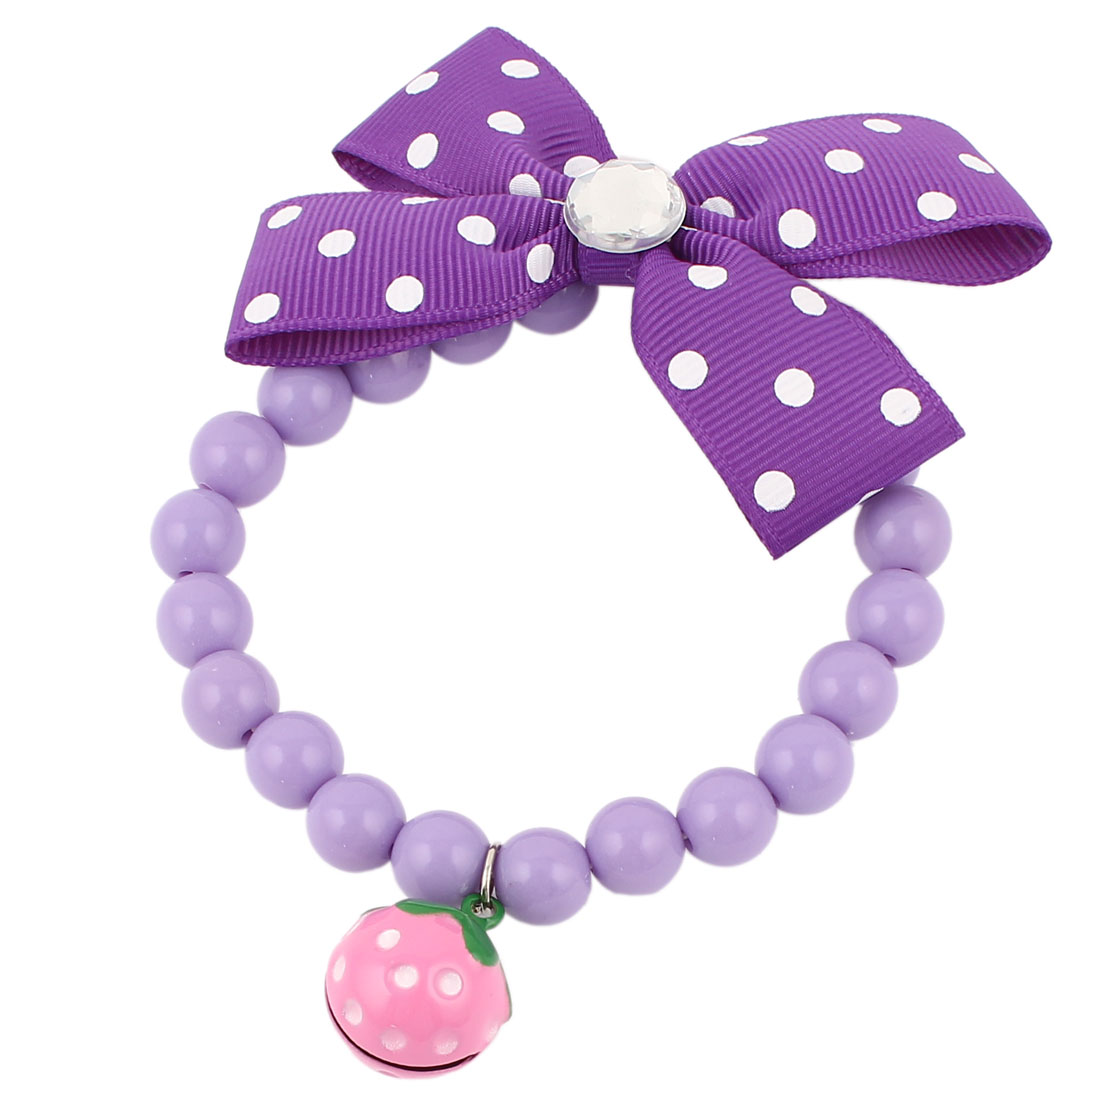 Metal Bell Pendant Bowtie Accent Pet Dog Plastic Beads Collar Necklace Purple XS